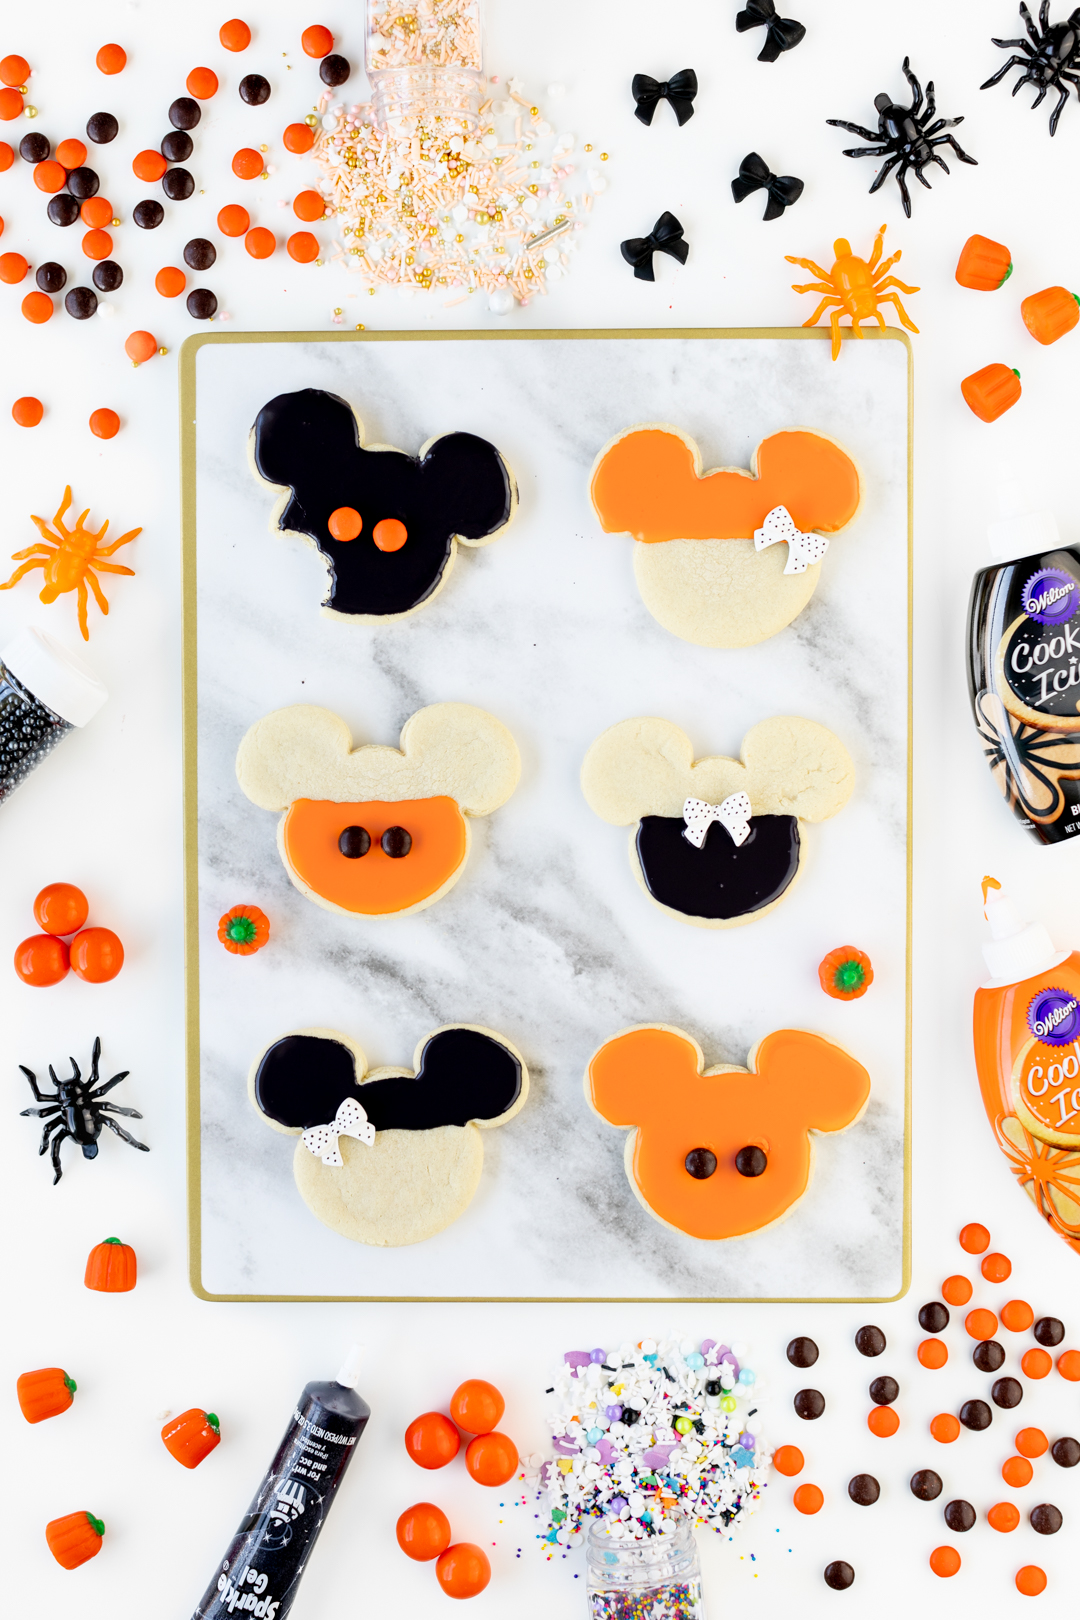 Mickey and Minnie Halloween Cookies decorated with orange and black icing and candies.